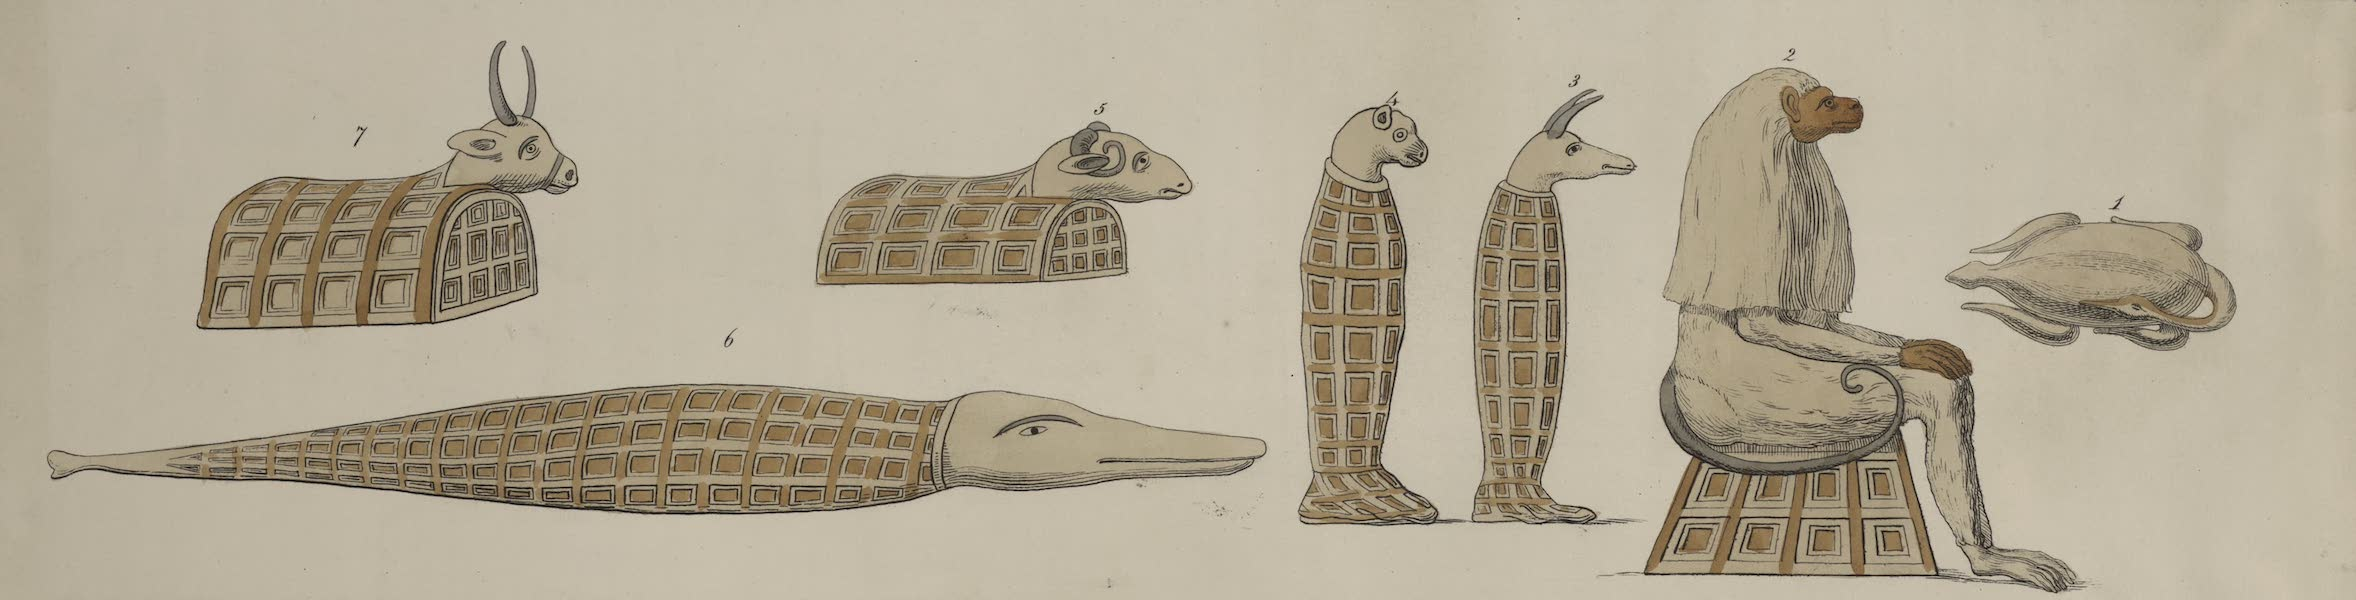 Plates Illustrative of the Researches and Operations of G. Belzoni - No. 2 - Egyptian arch in Thebes (1820)